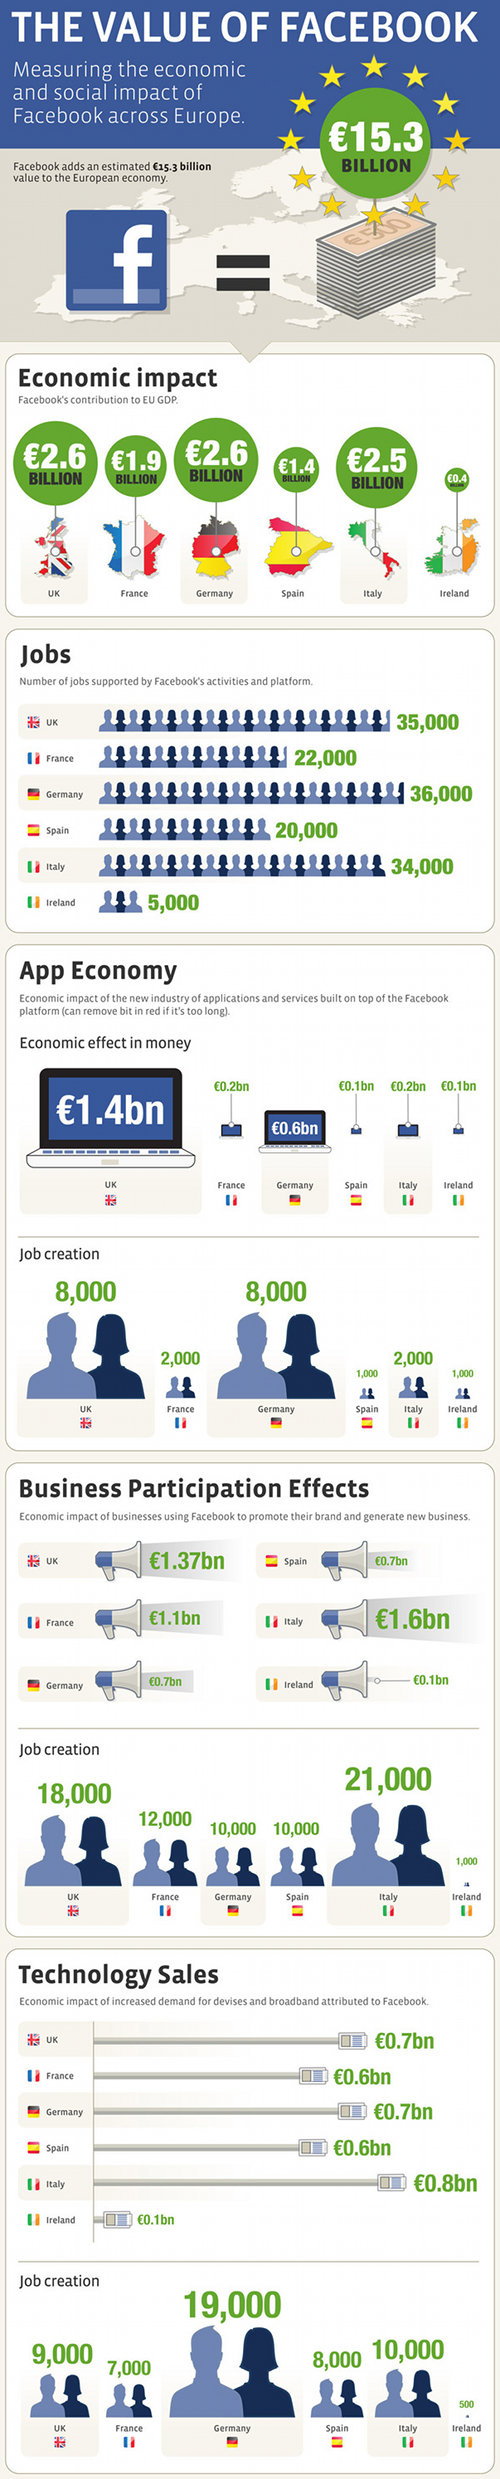 The Value of Facebook Across Europe (Infographic)